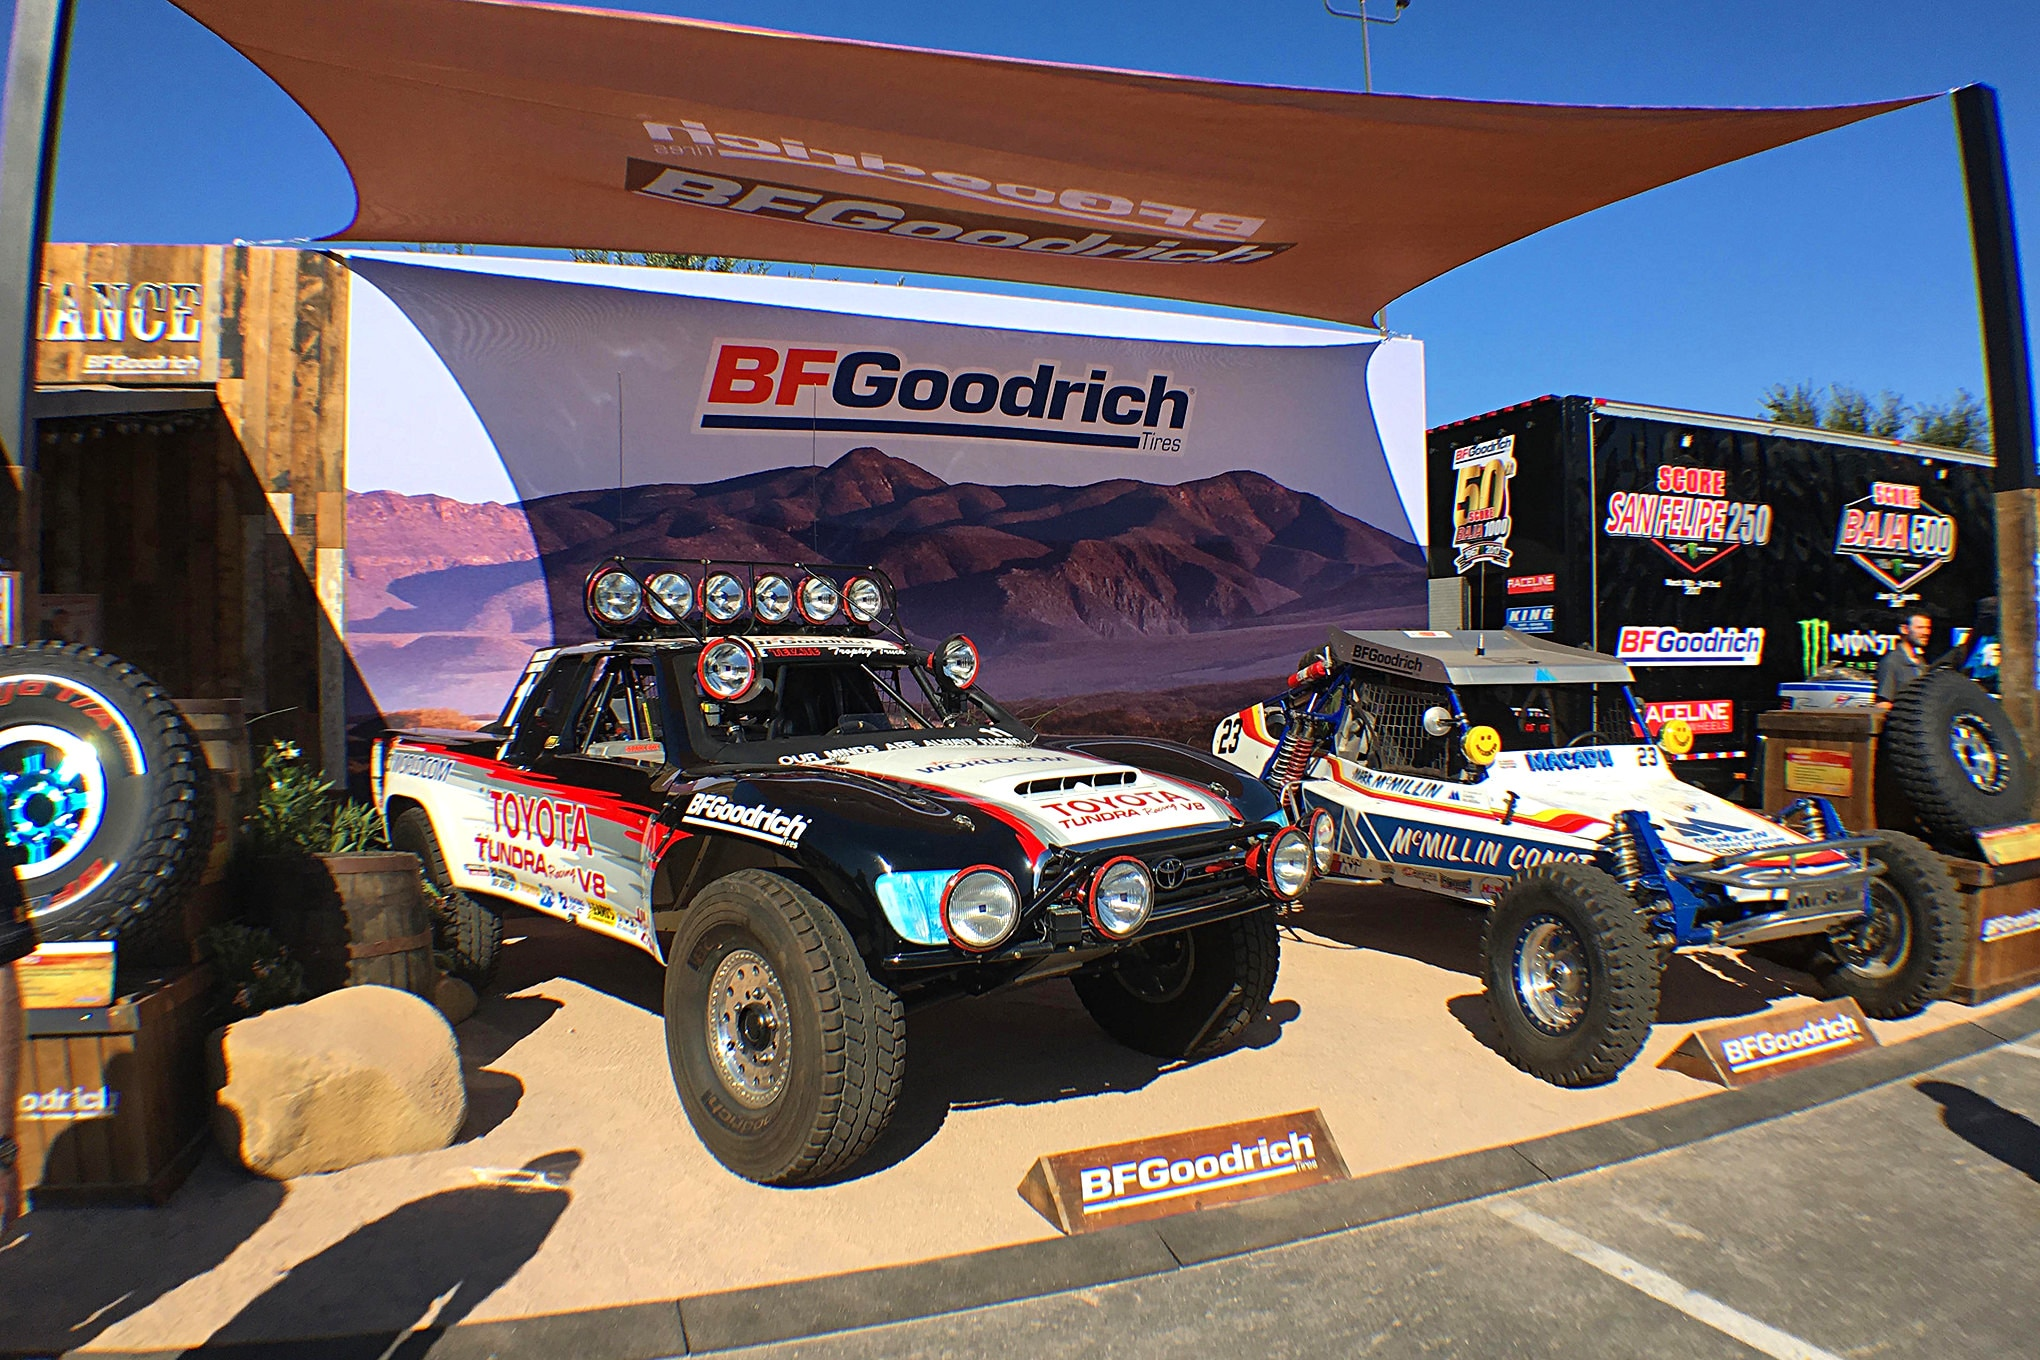 The BFGoodrich display near the SCORE area had some great old race cars.